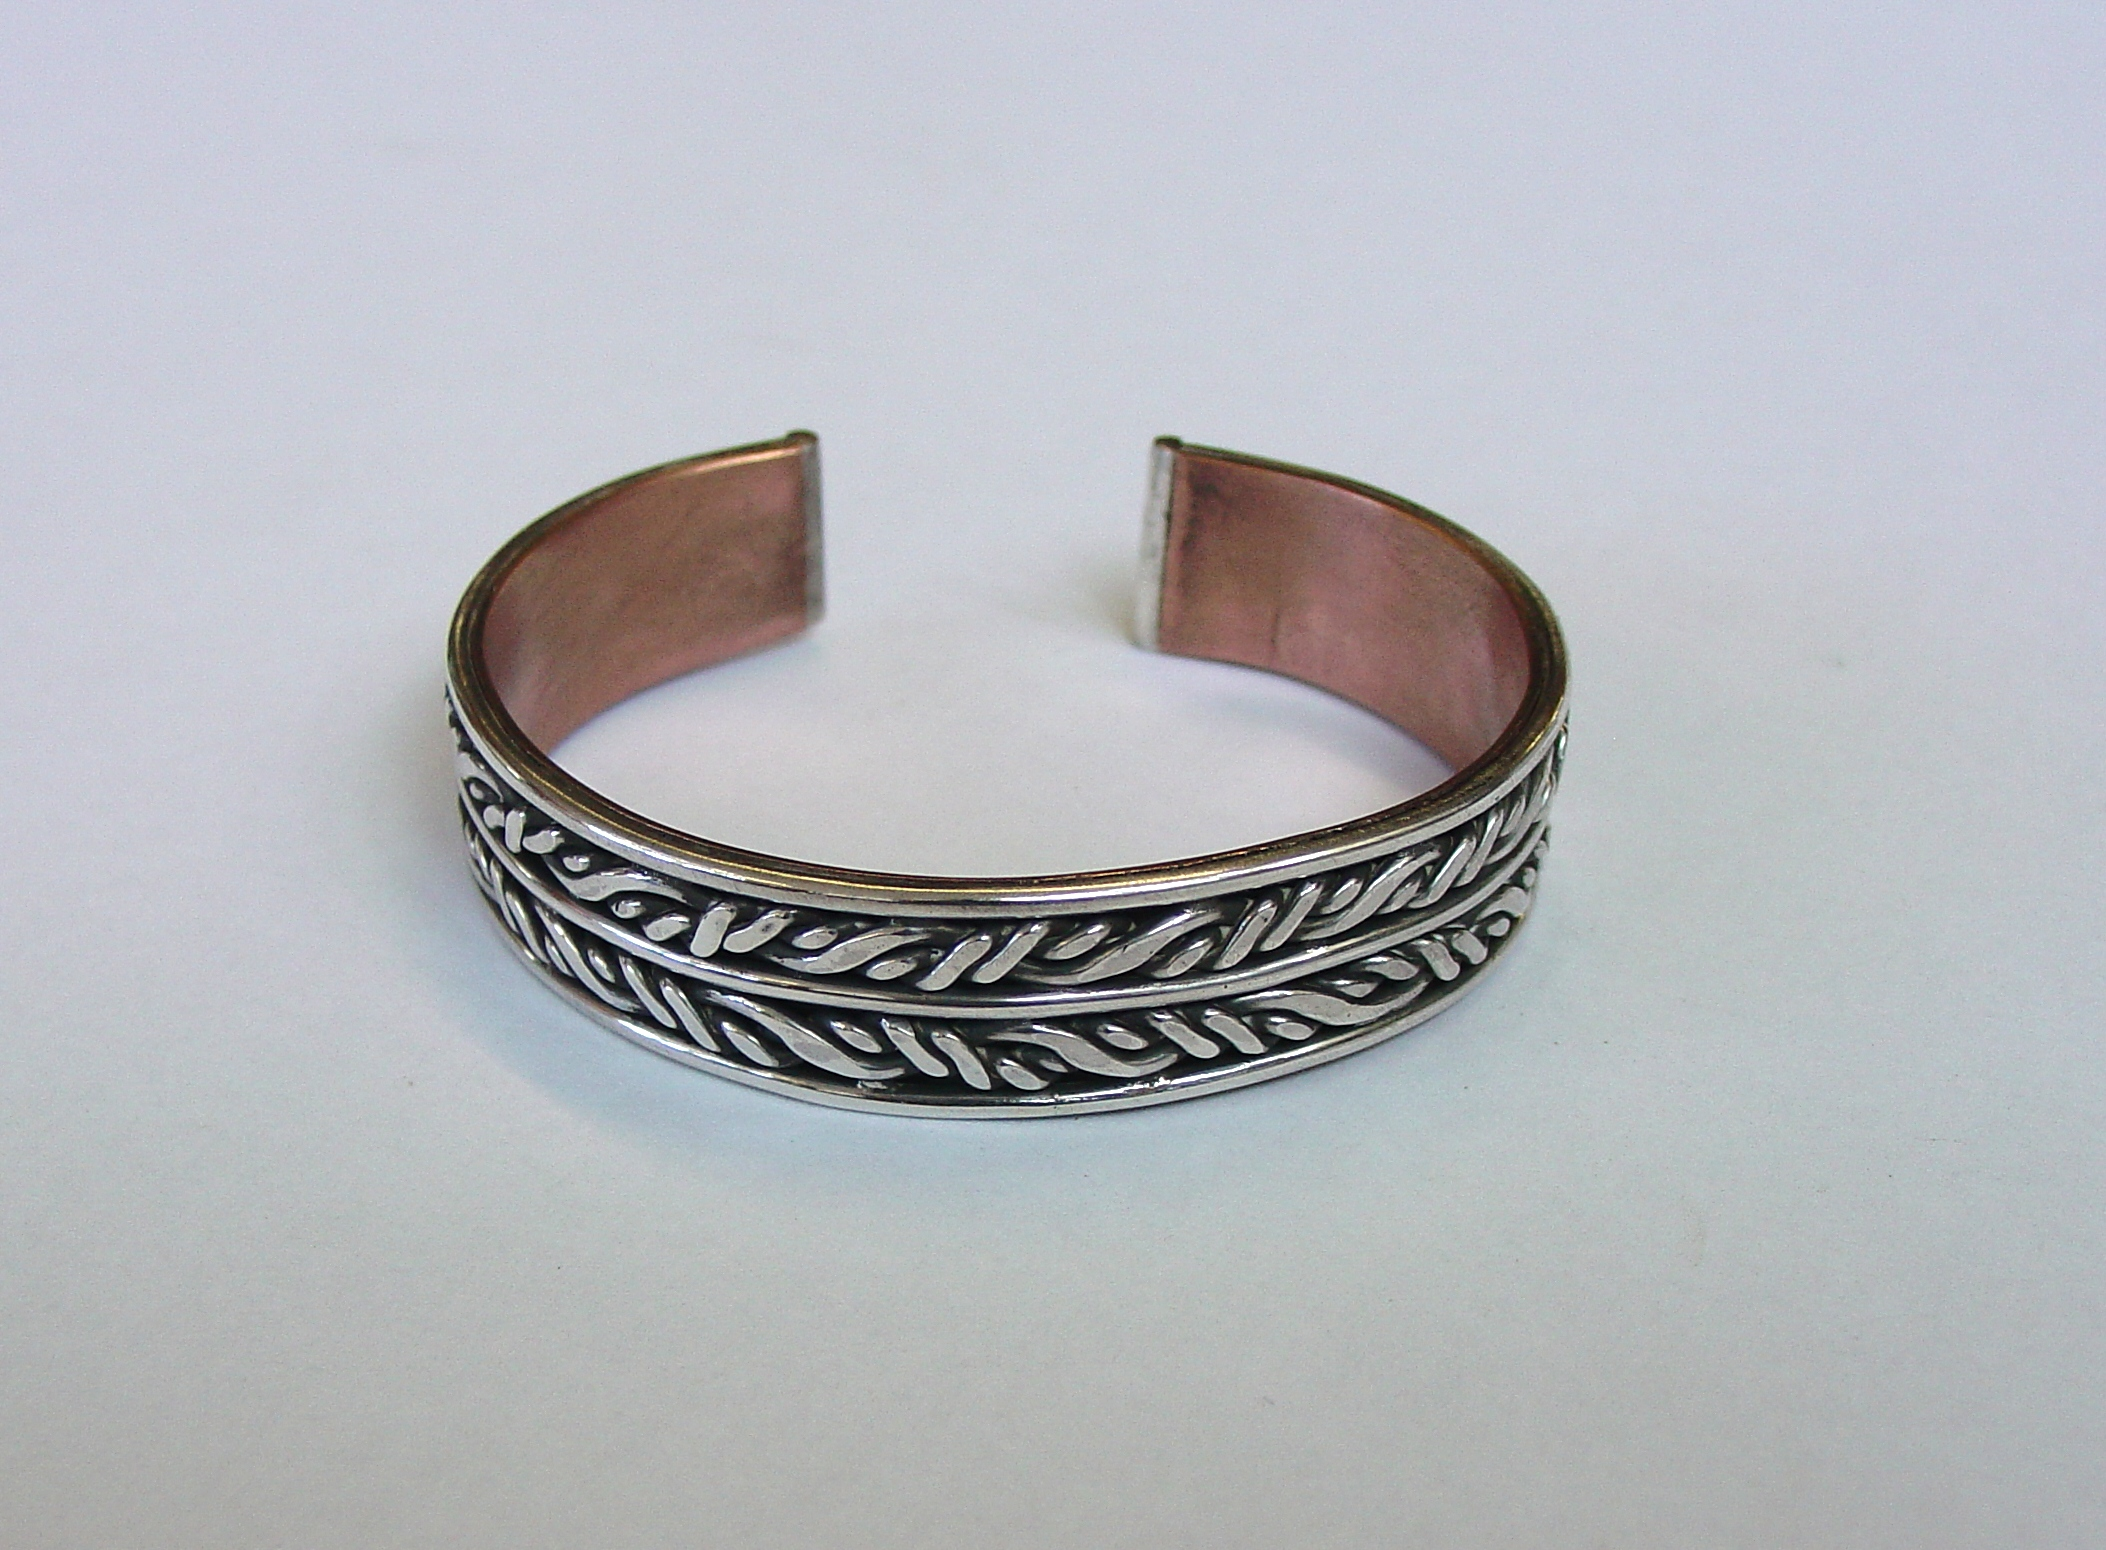 Silver twist bangle with copper backing